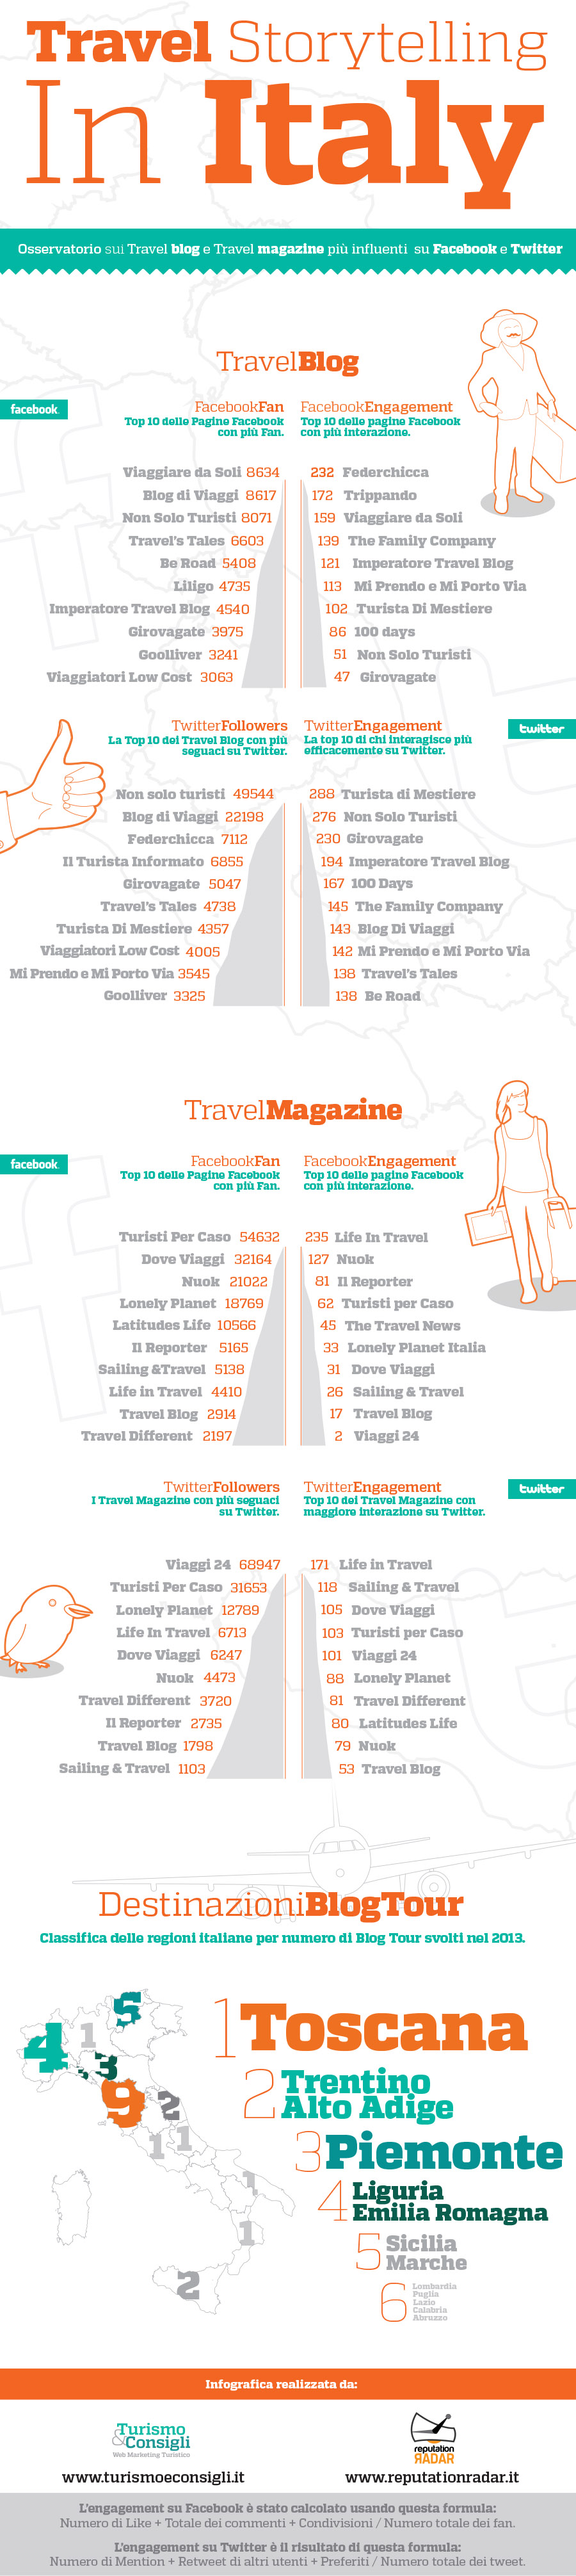 Infografica Travel StoryTelling in Italy